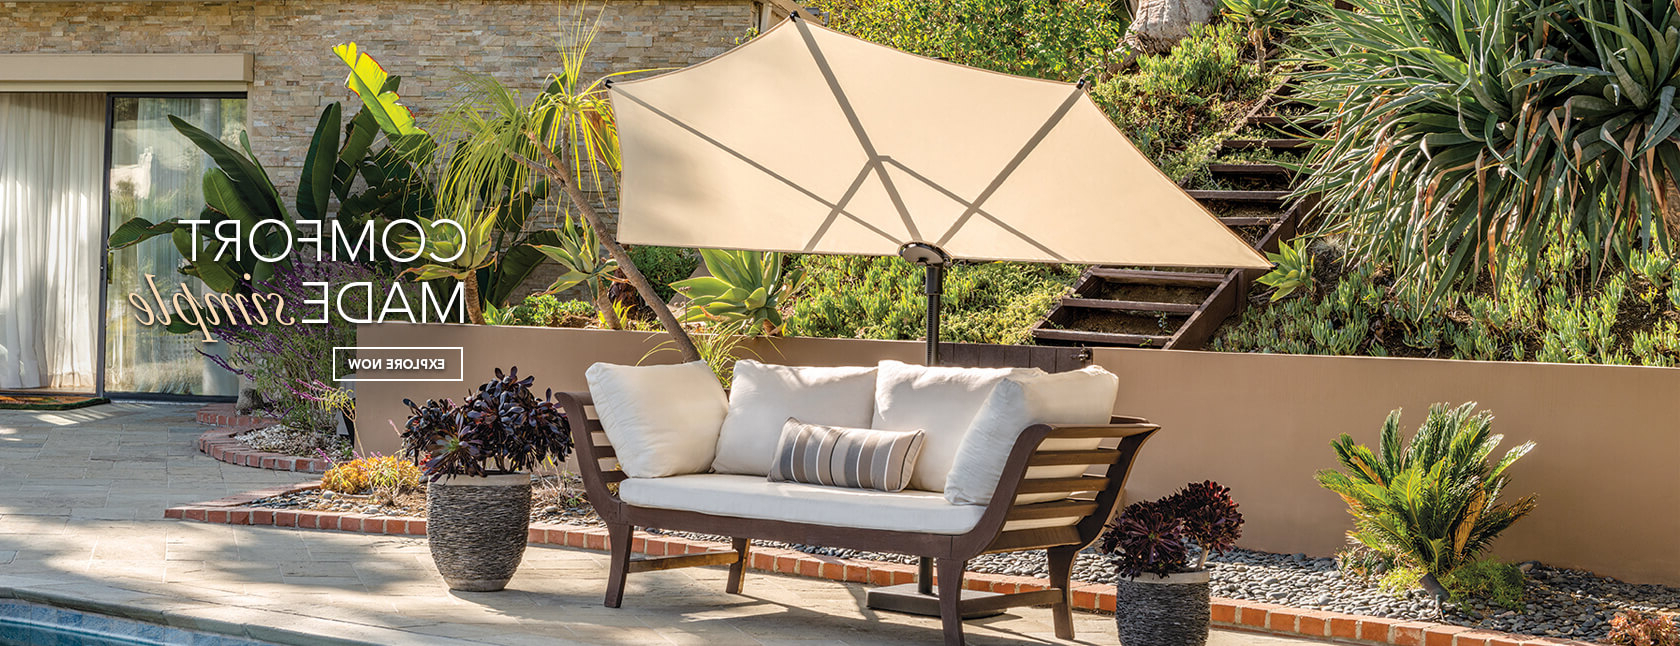 Patio Umbrellas, Patio Shades, Outdoor Umbrella – Simplyshade With Regard To Current Cordelia Rectangular Market Umbrellas (View 16 of 20)